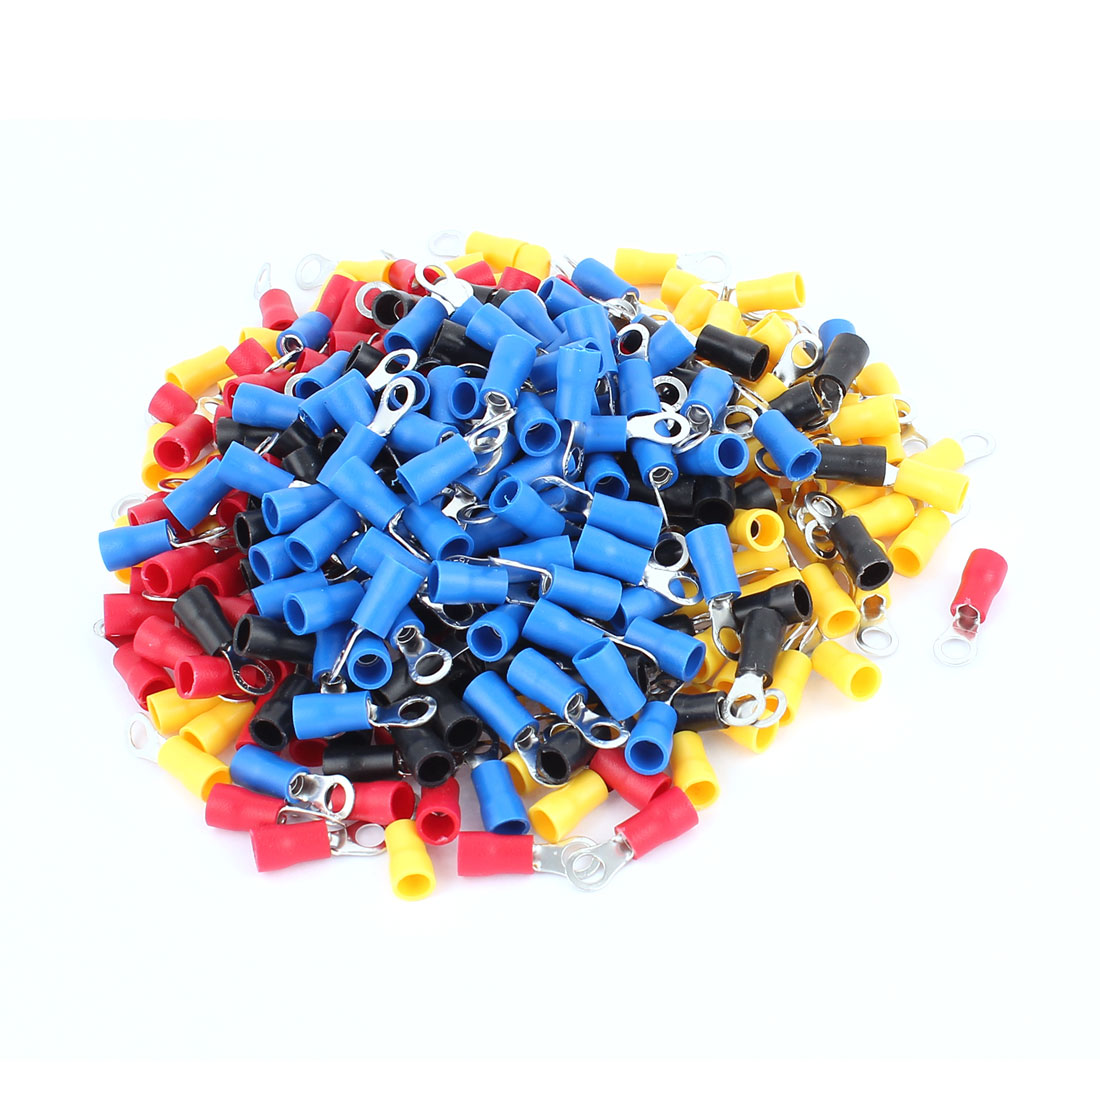 320Pcs RV2-4S AWG 16-14 Red Yellow Blue Black PVC Sleeve Pre Insulated Ring Terminals Connector